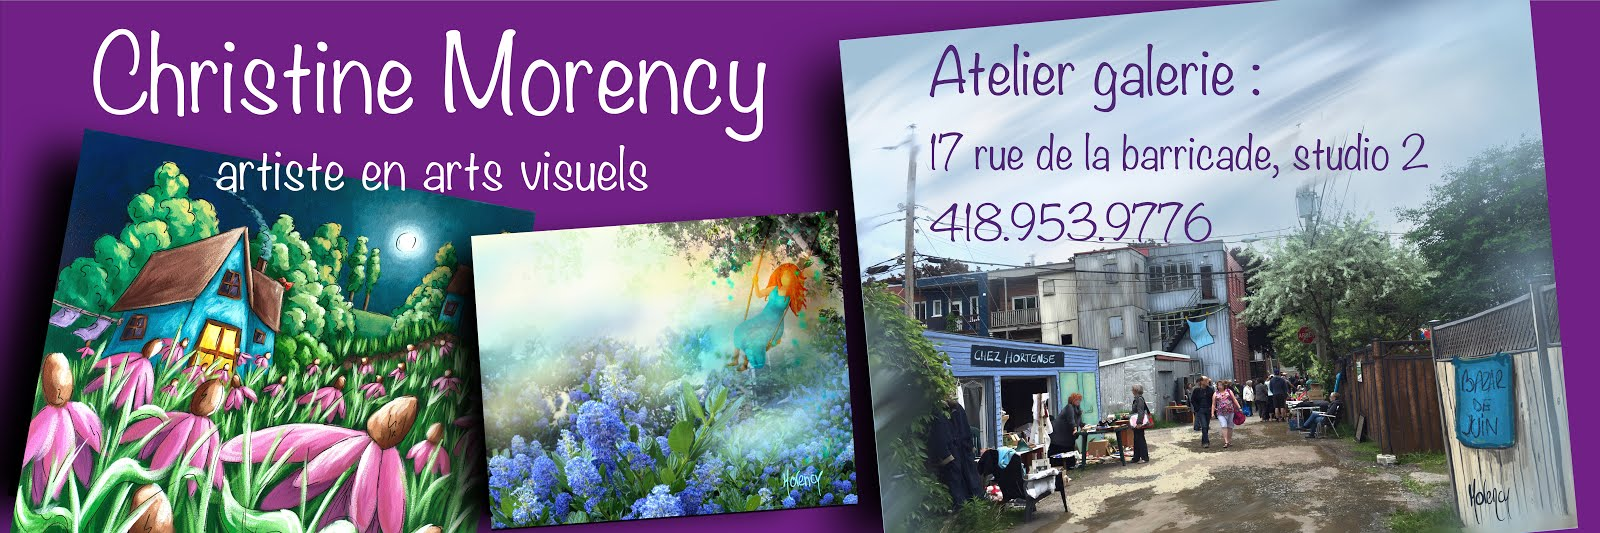 Christine Morency artiste peintre